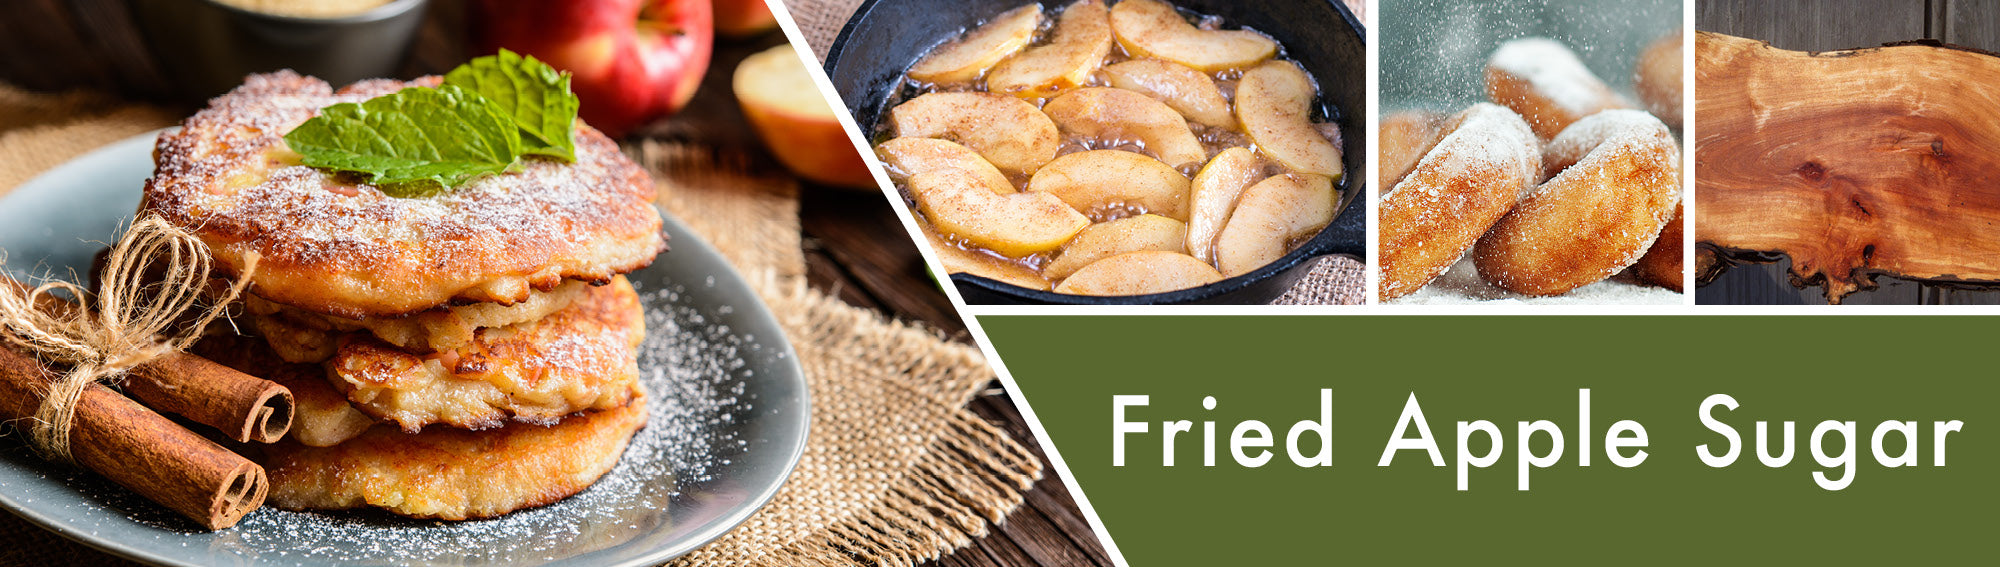 Fried Apple Sugar Fragrance